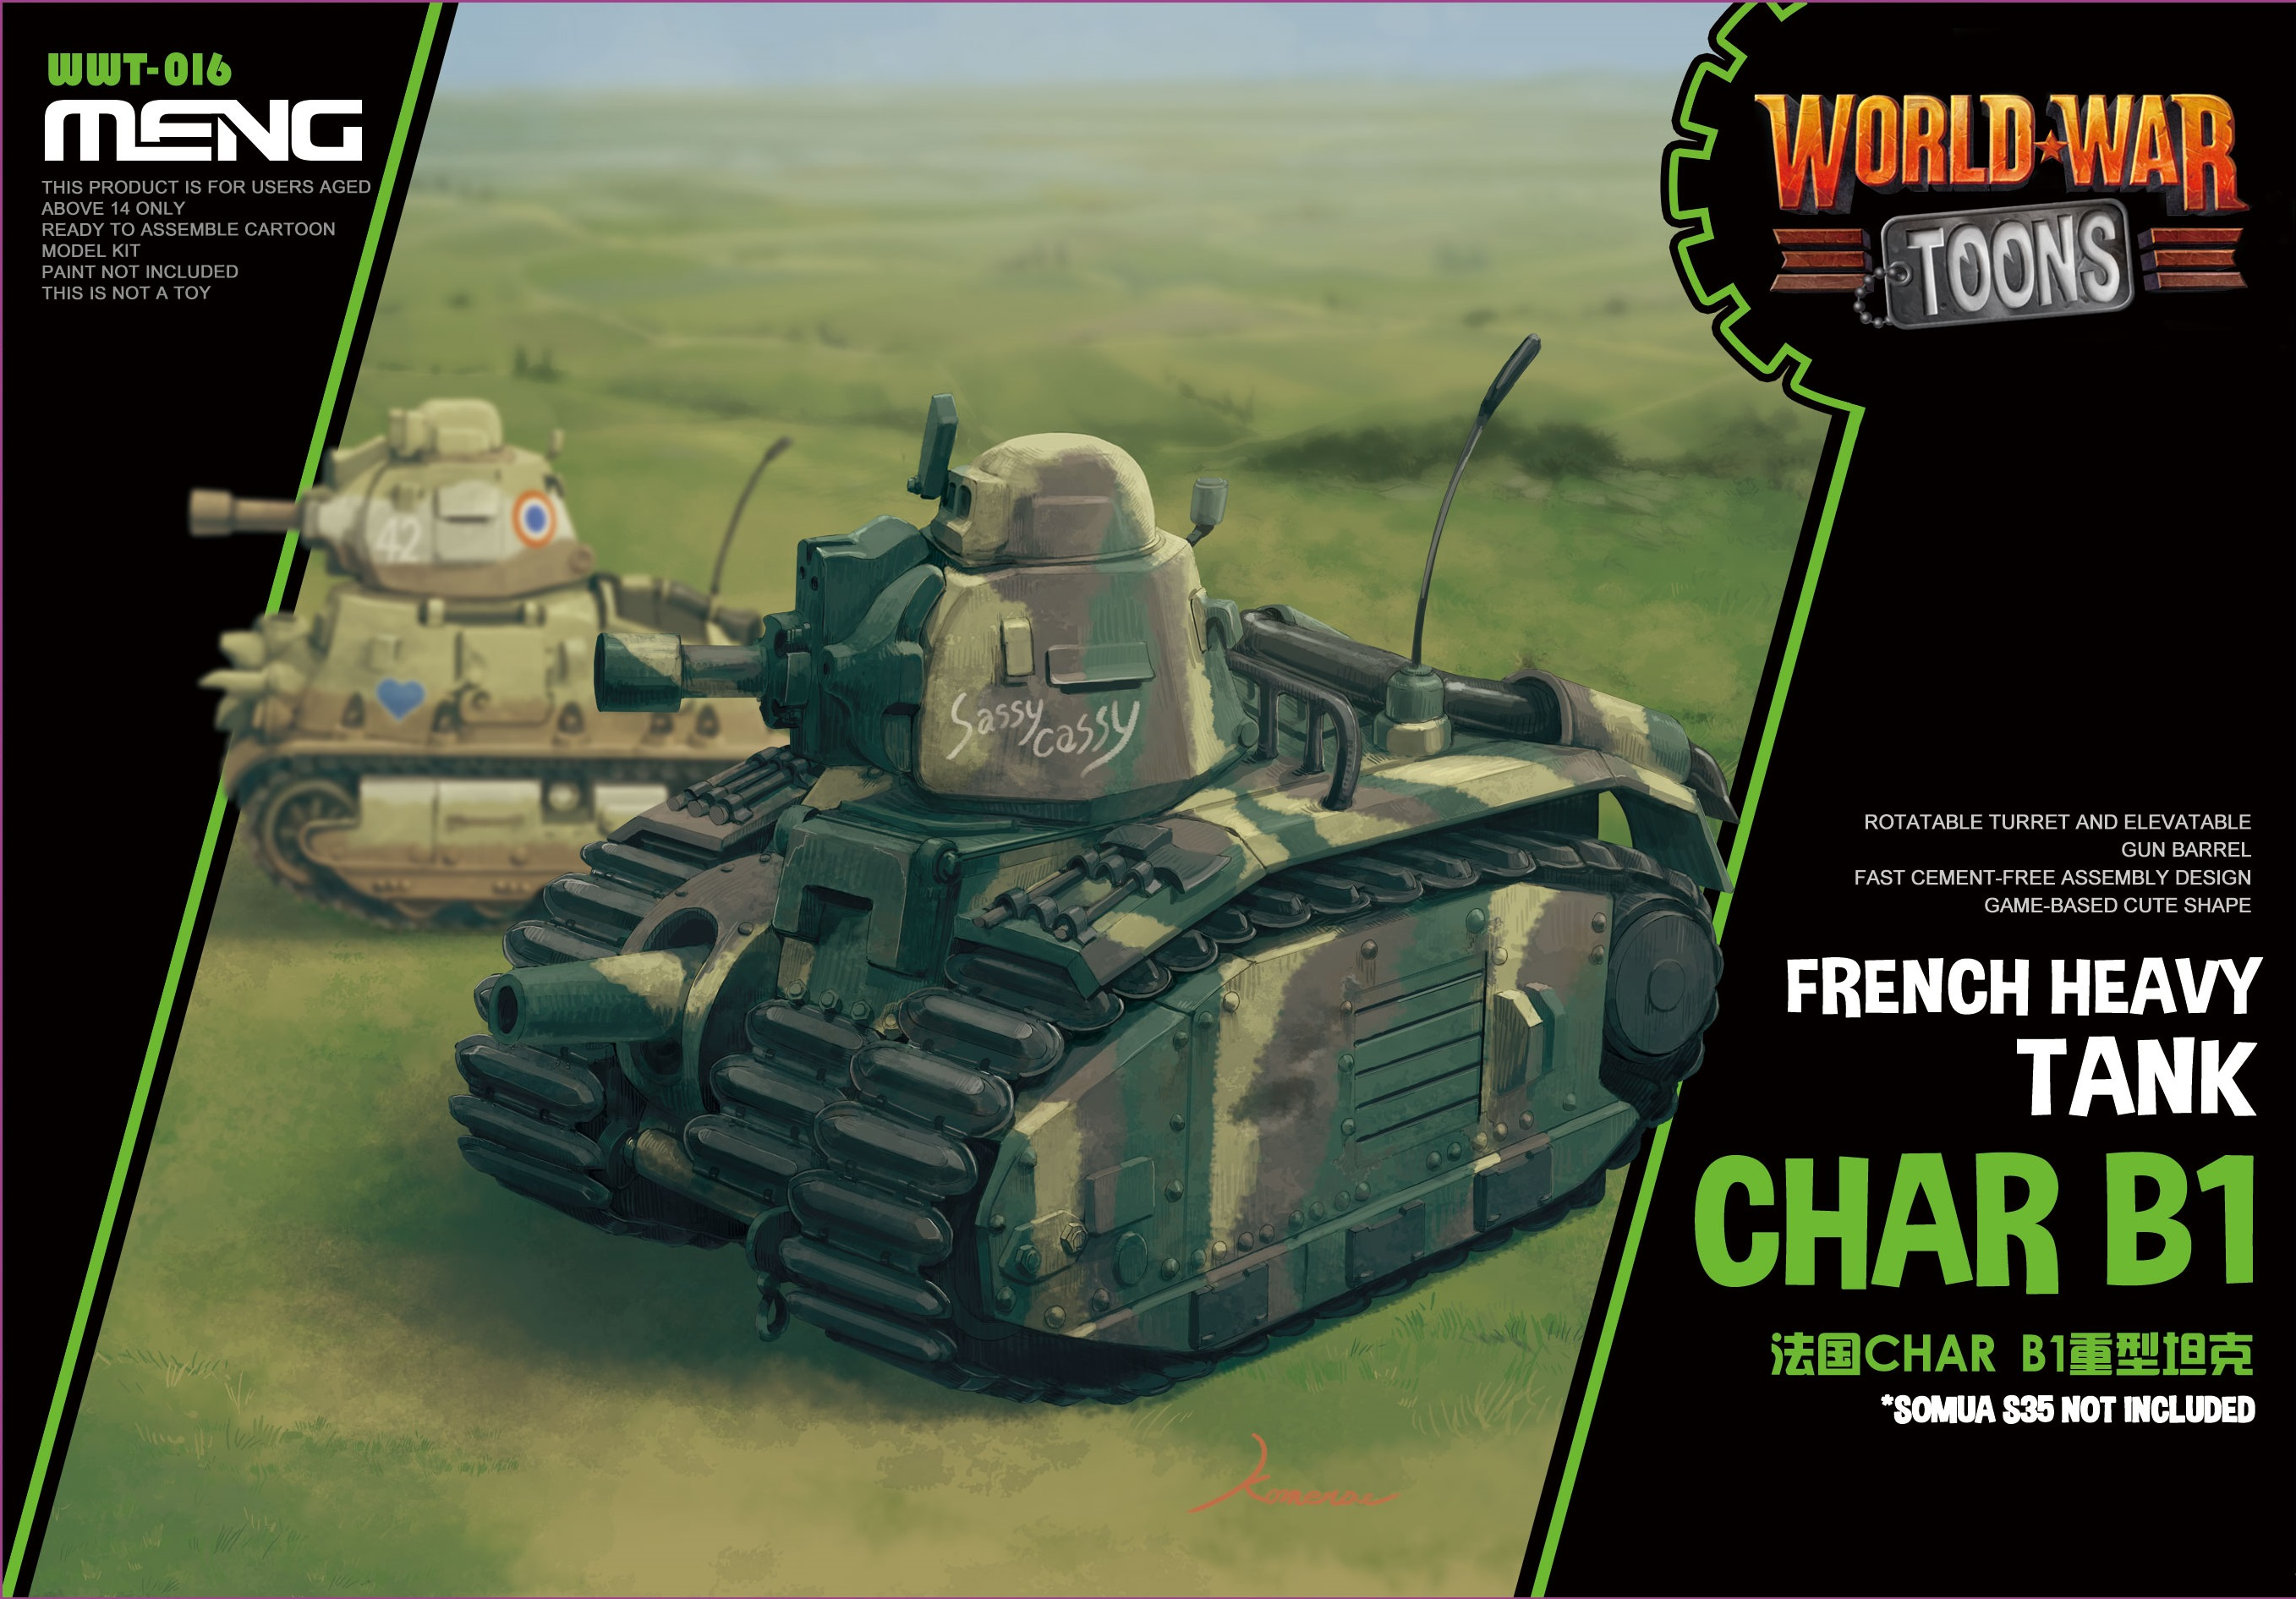 Meng French Heavy Tank Char B1 (Cartoon Model)